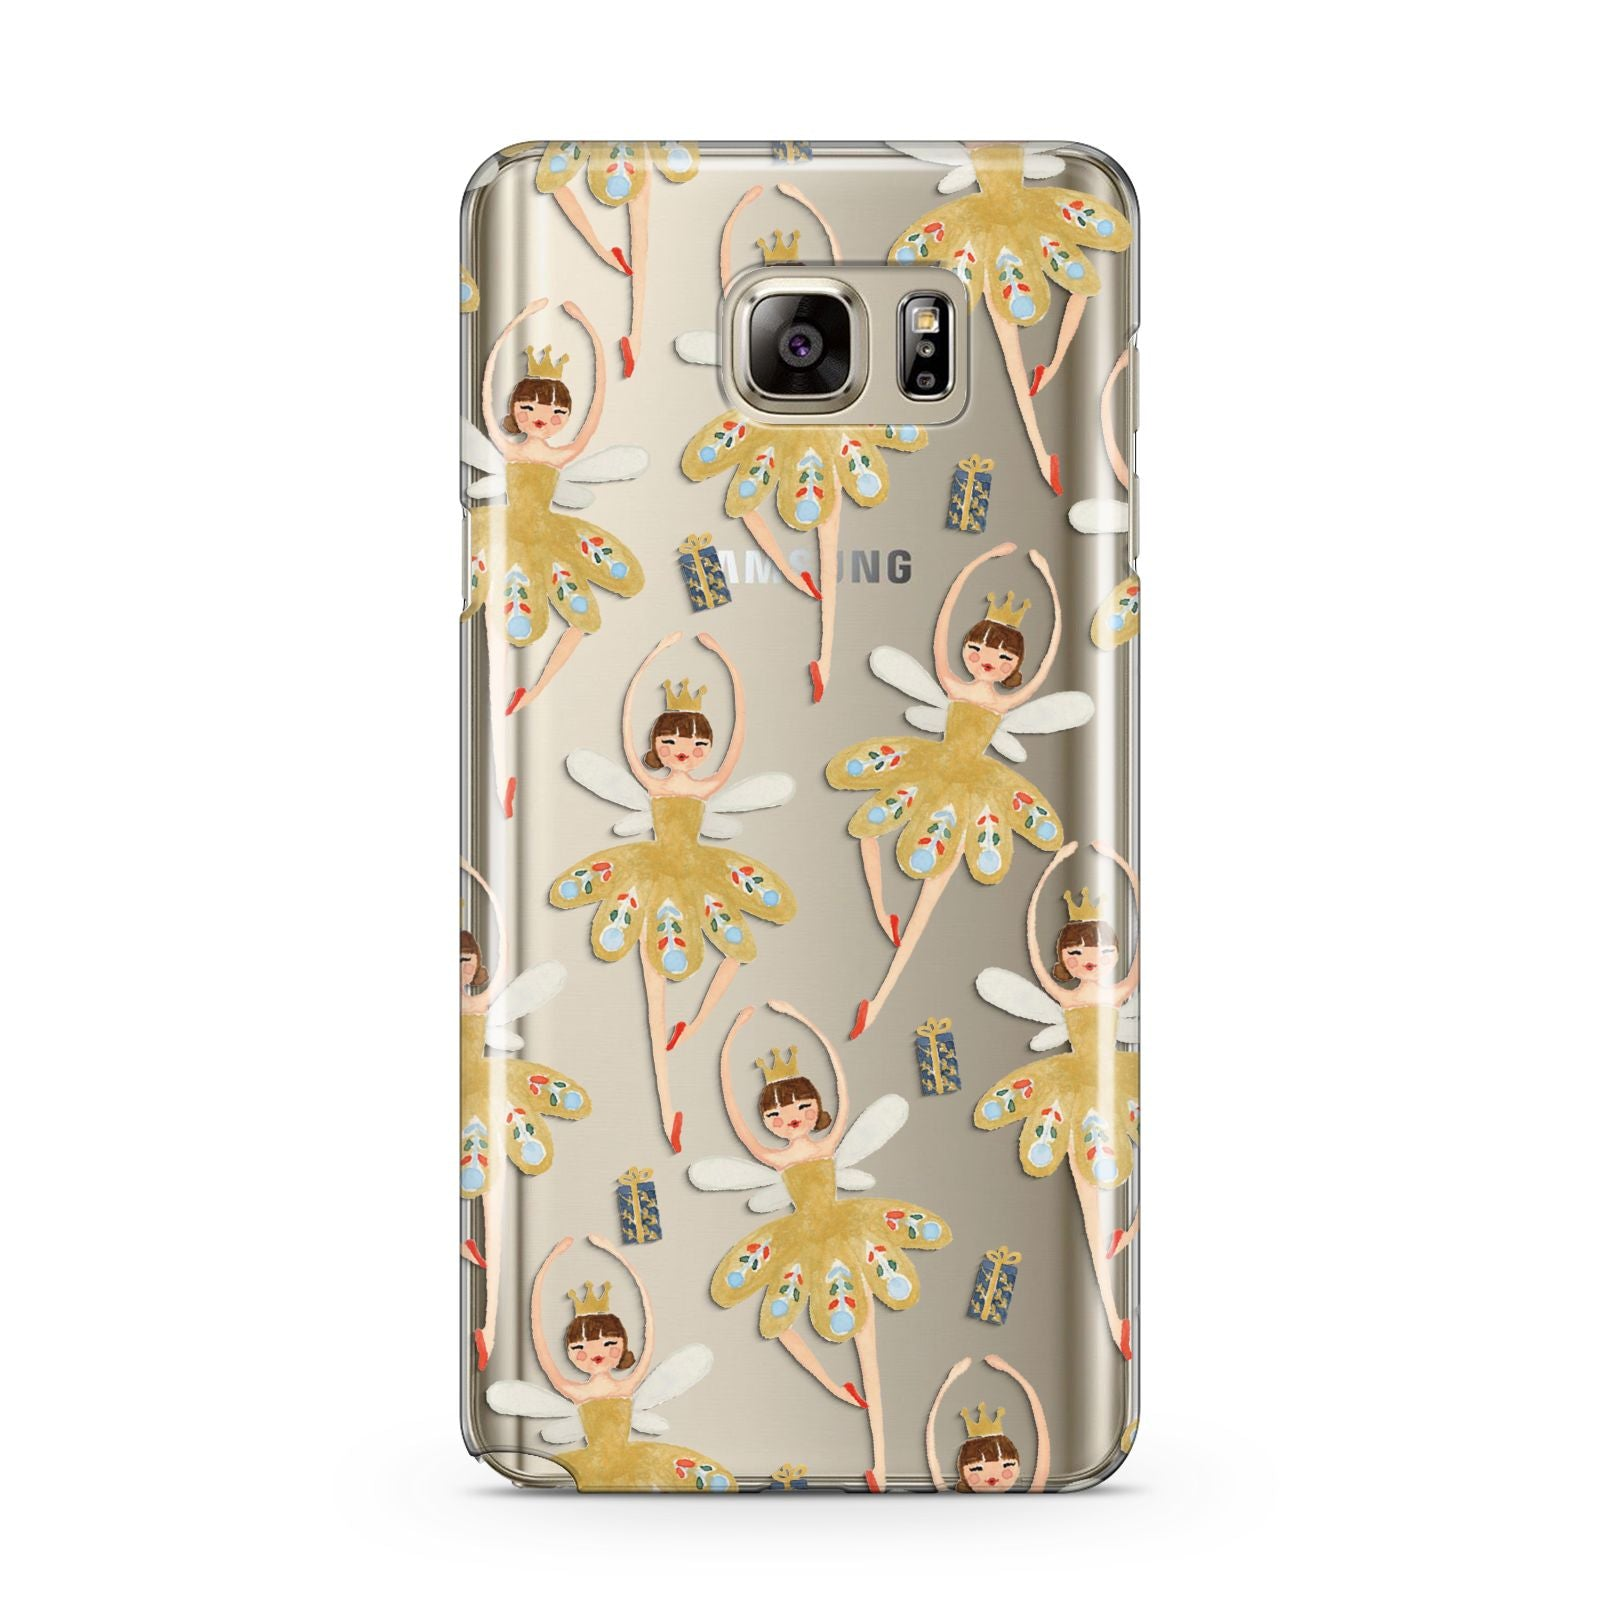 Dancing ballerina princess Samsung Galaxy Note 5 Case